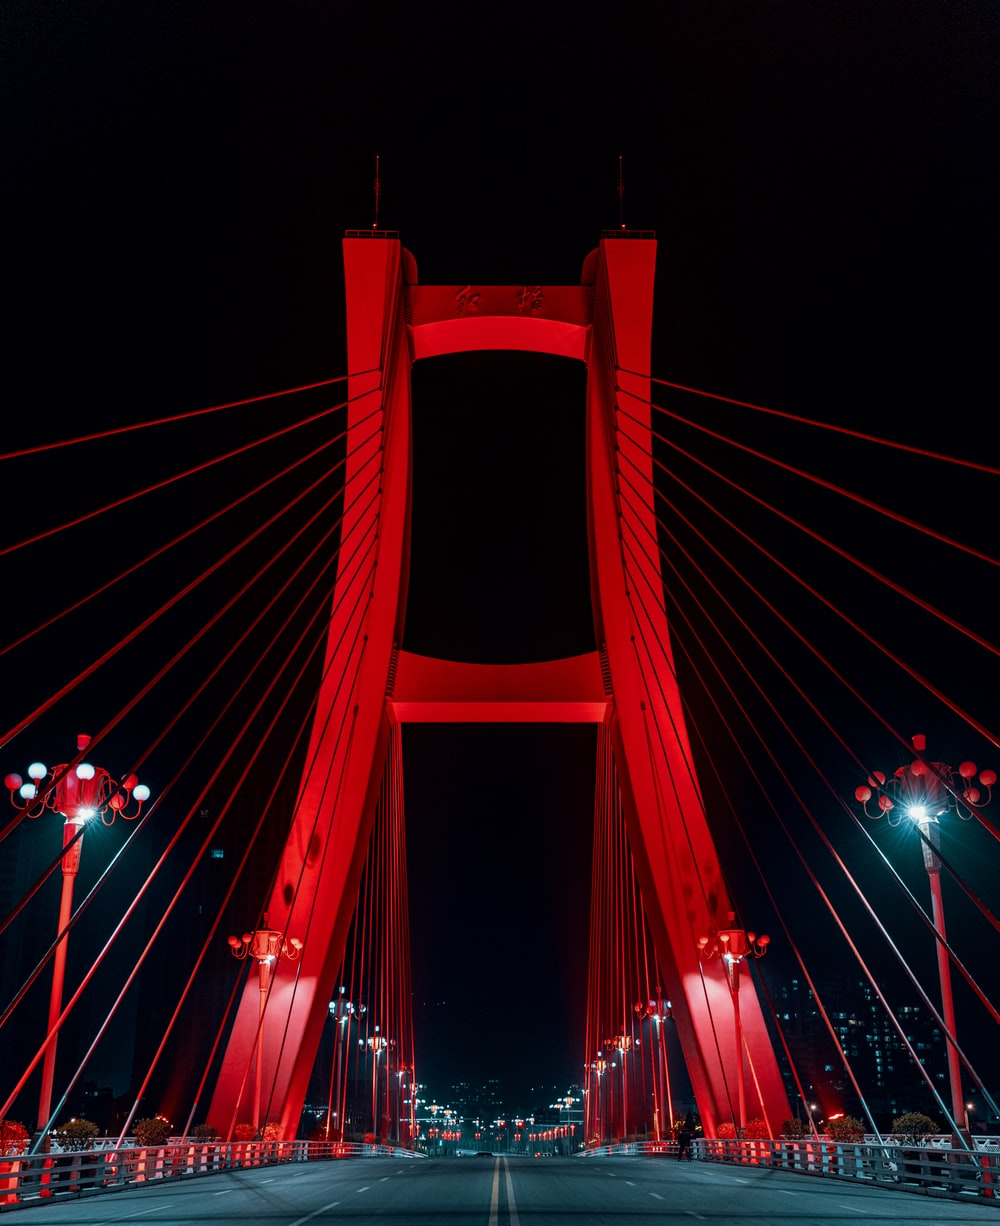 blue bridge with lights during night time